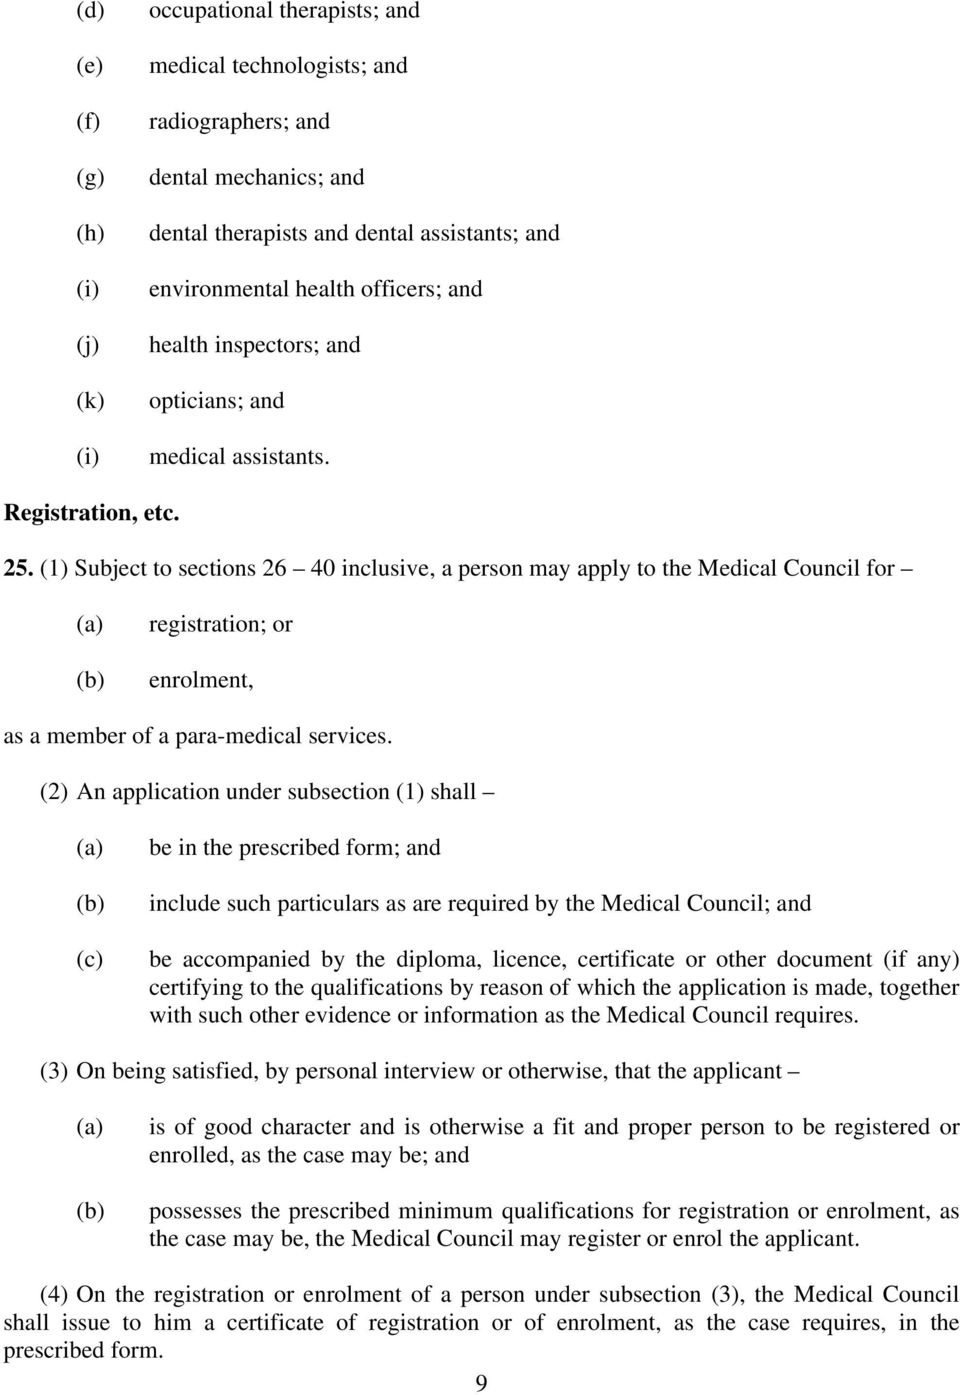 (1) Subject to sections 26 40 inclusive, a person may apply to the Medical Council for registration; or enrolment, as a member of a para-medical services.